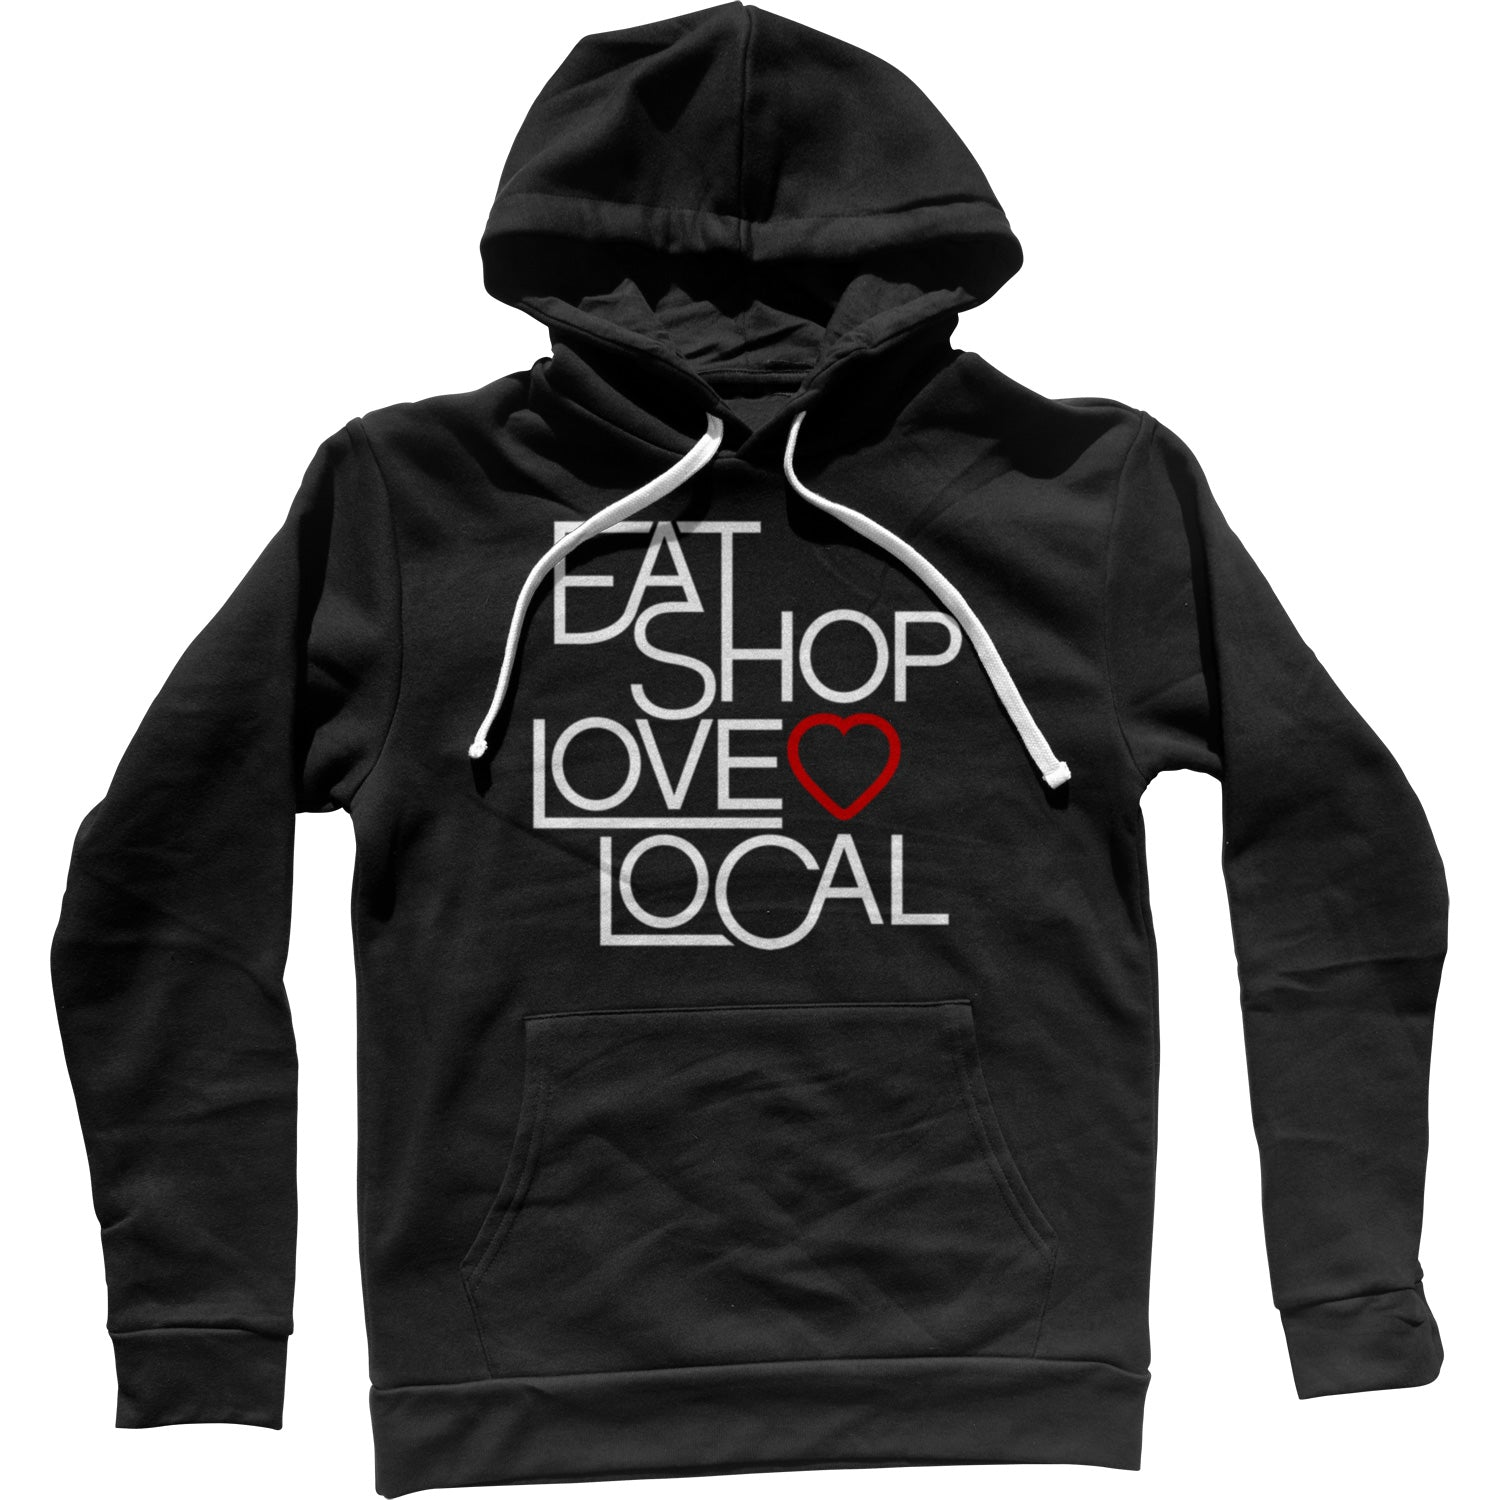 Love Shop Eat Local Unisex Hoodie